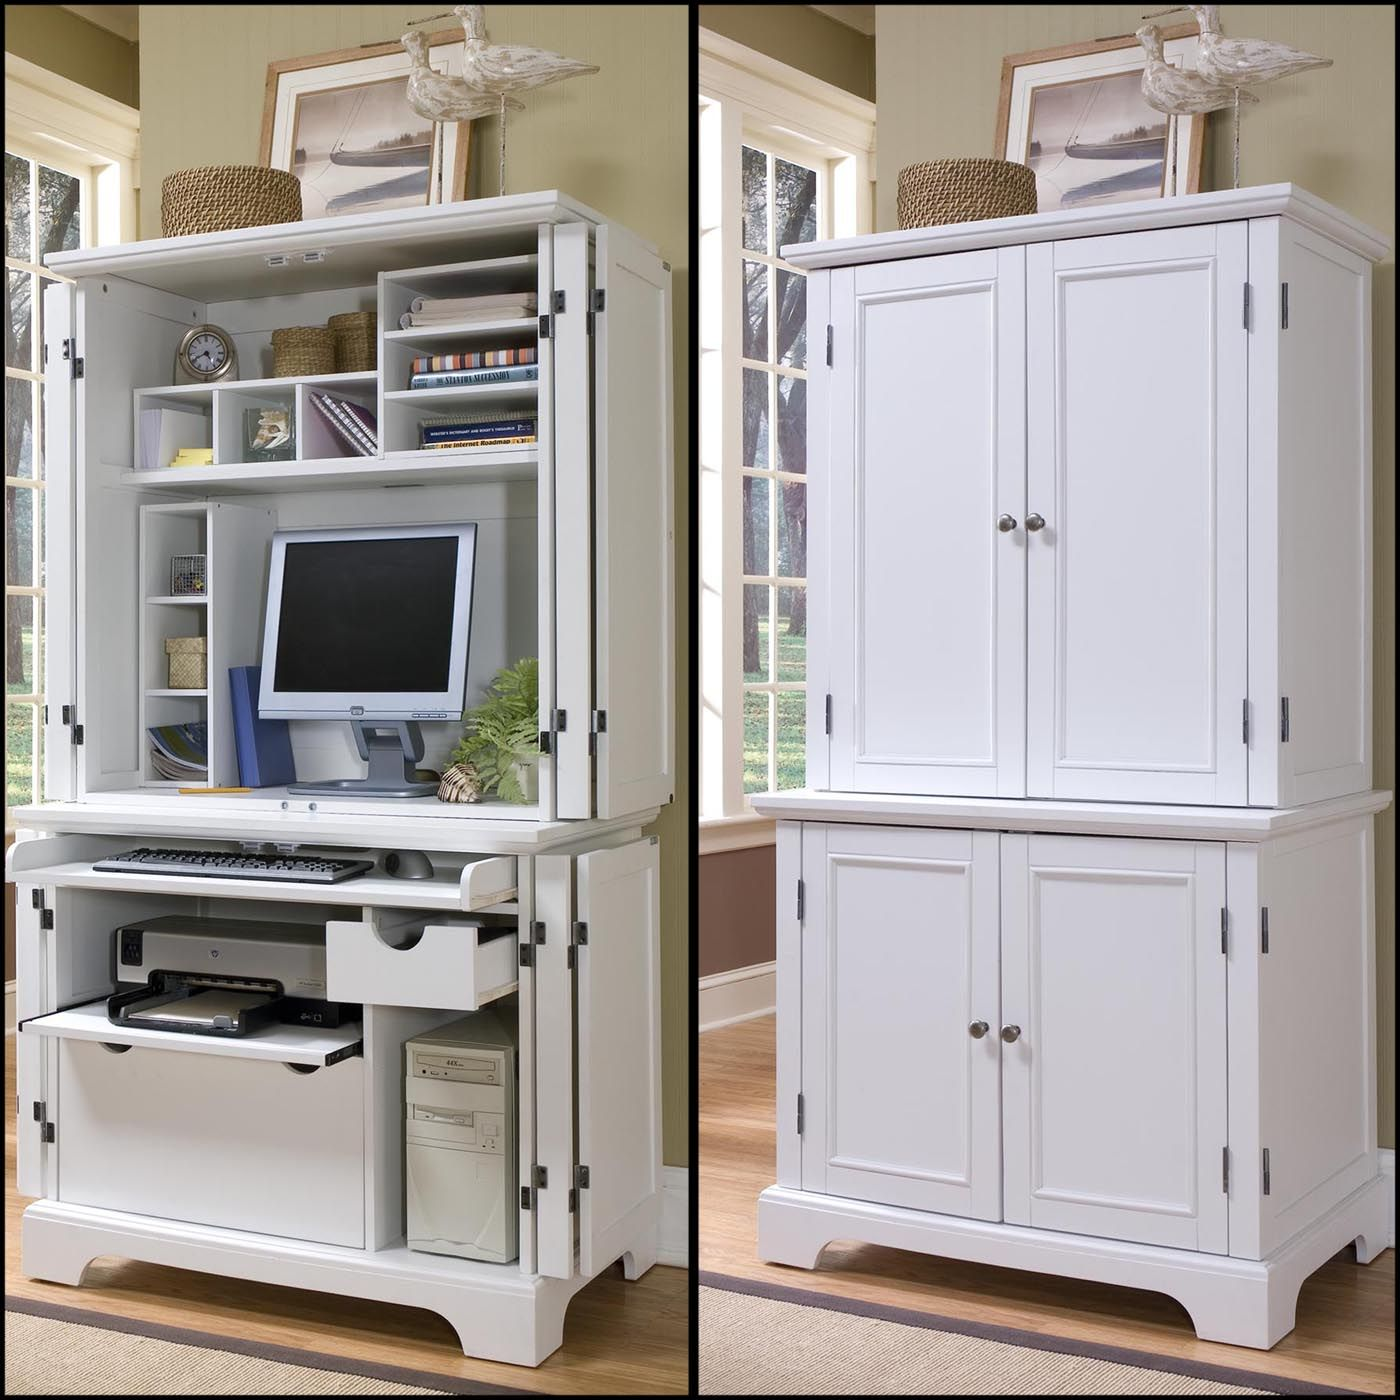 Naples Compact Computer Cabinet with Hutch by Home Styles, White Computer Armoir…